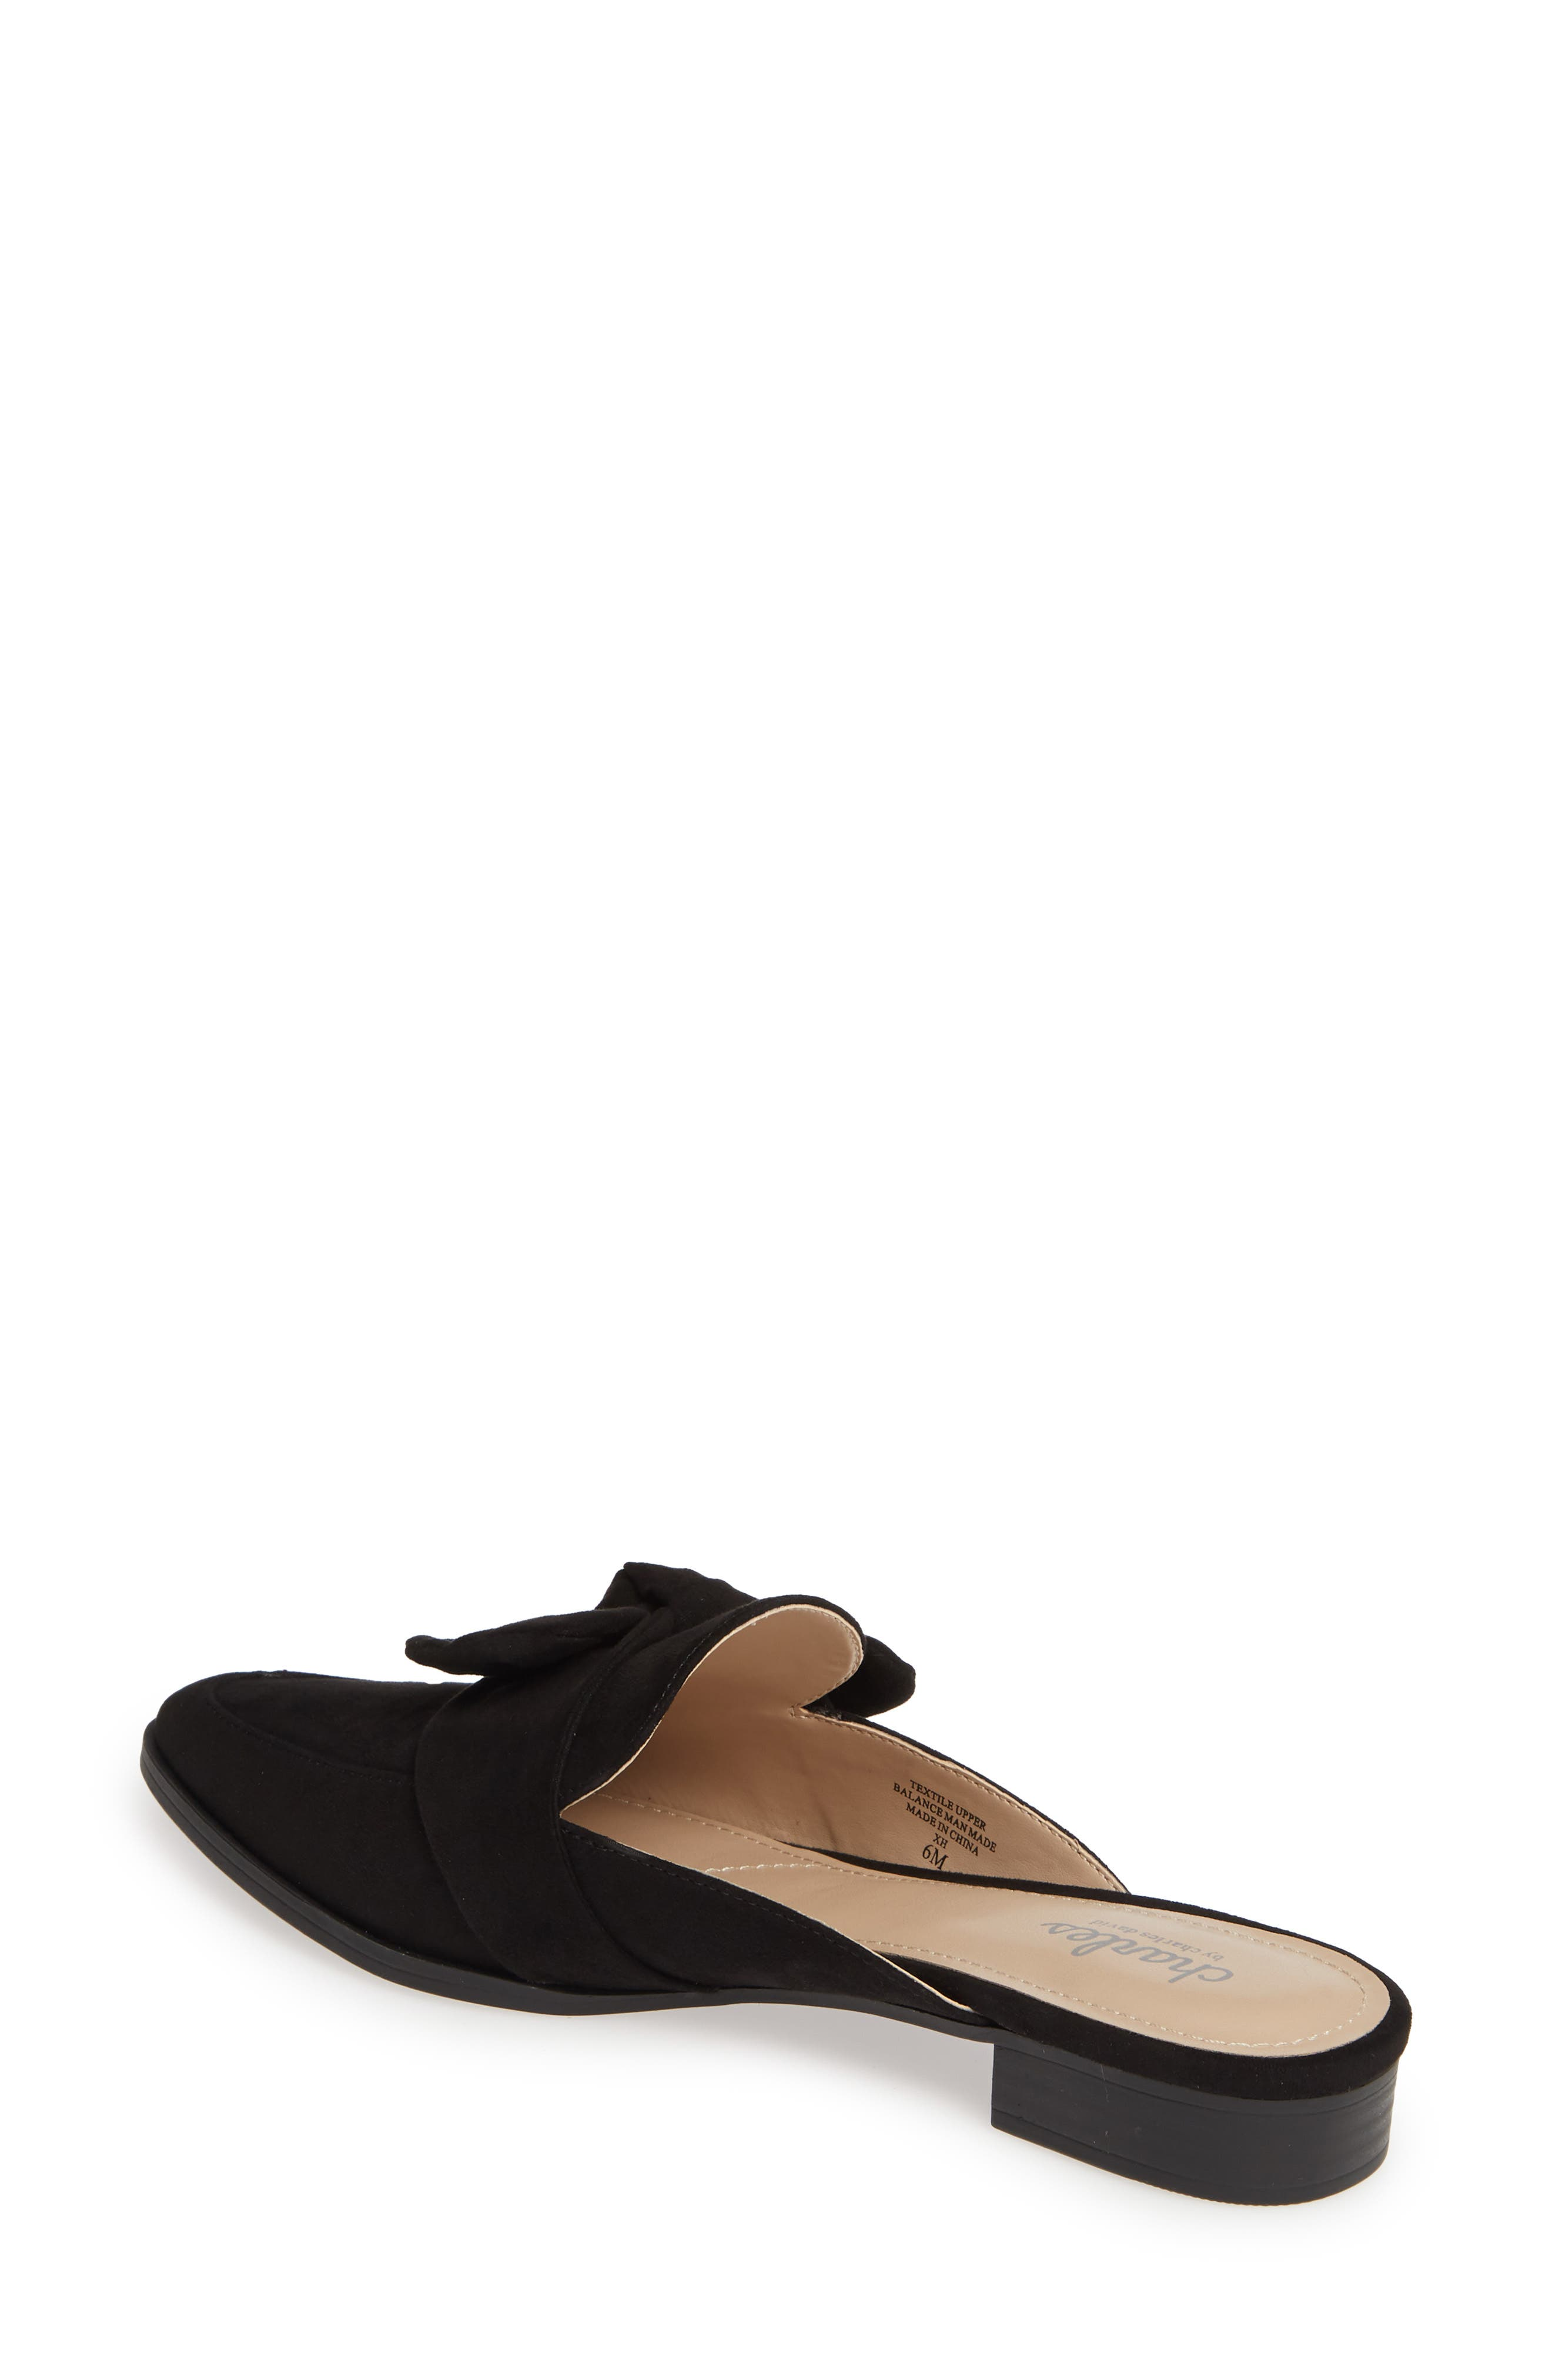 CHARLES BY CHARLES DAVID, Essence Mule, Alternate thumbnail 2, color, BLACK FABRIC